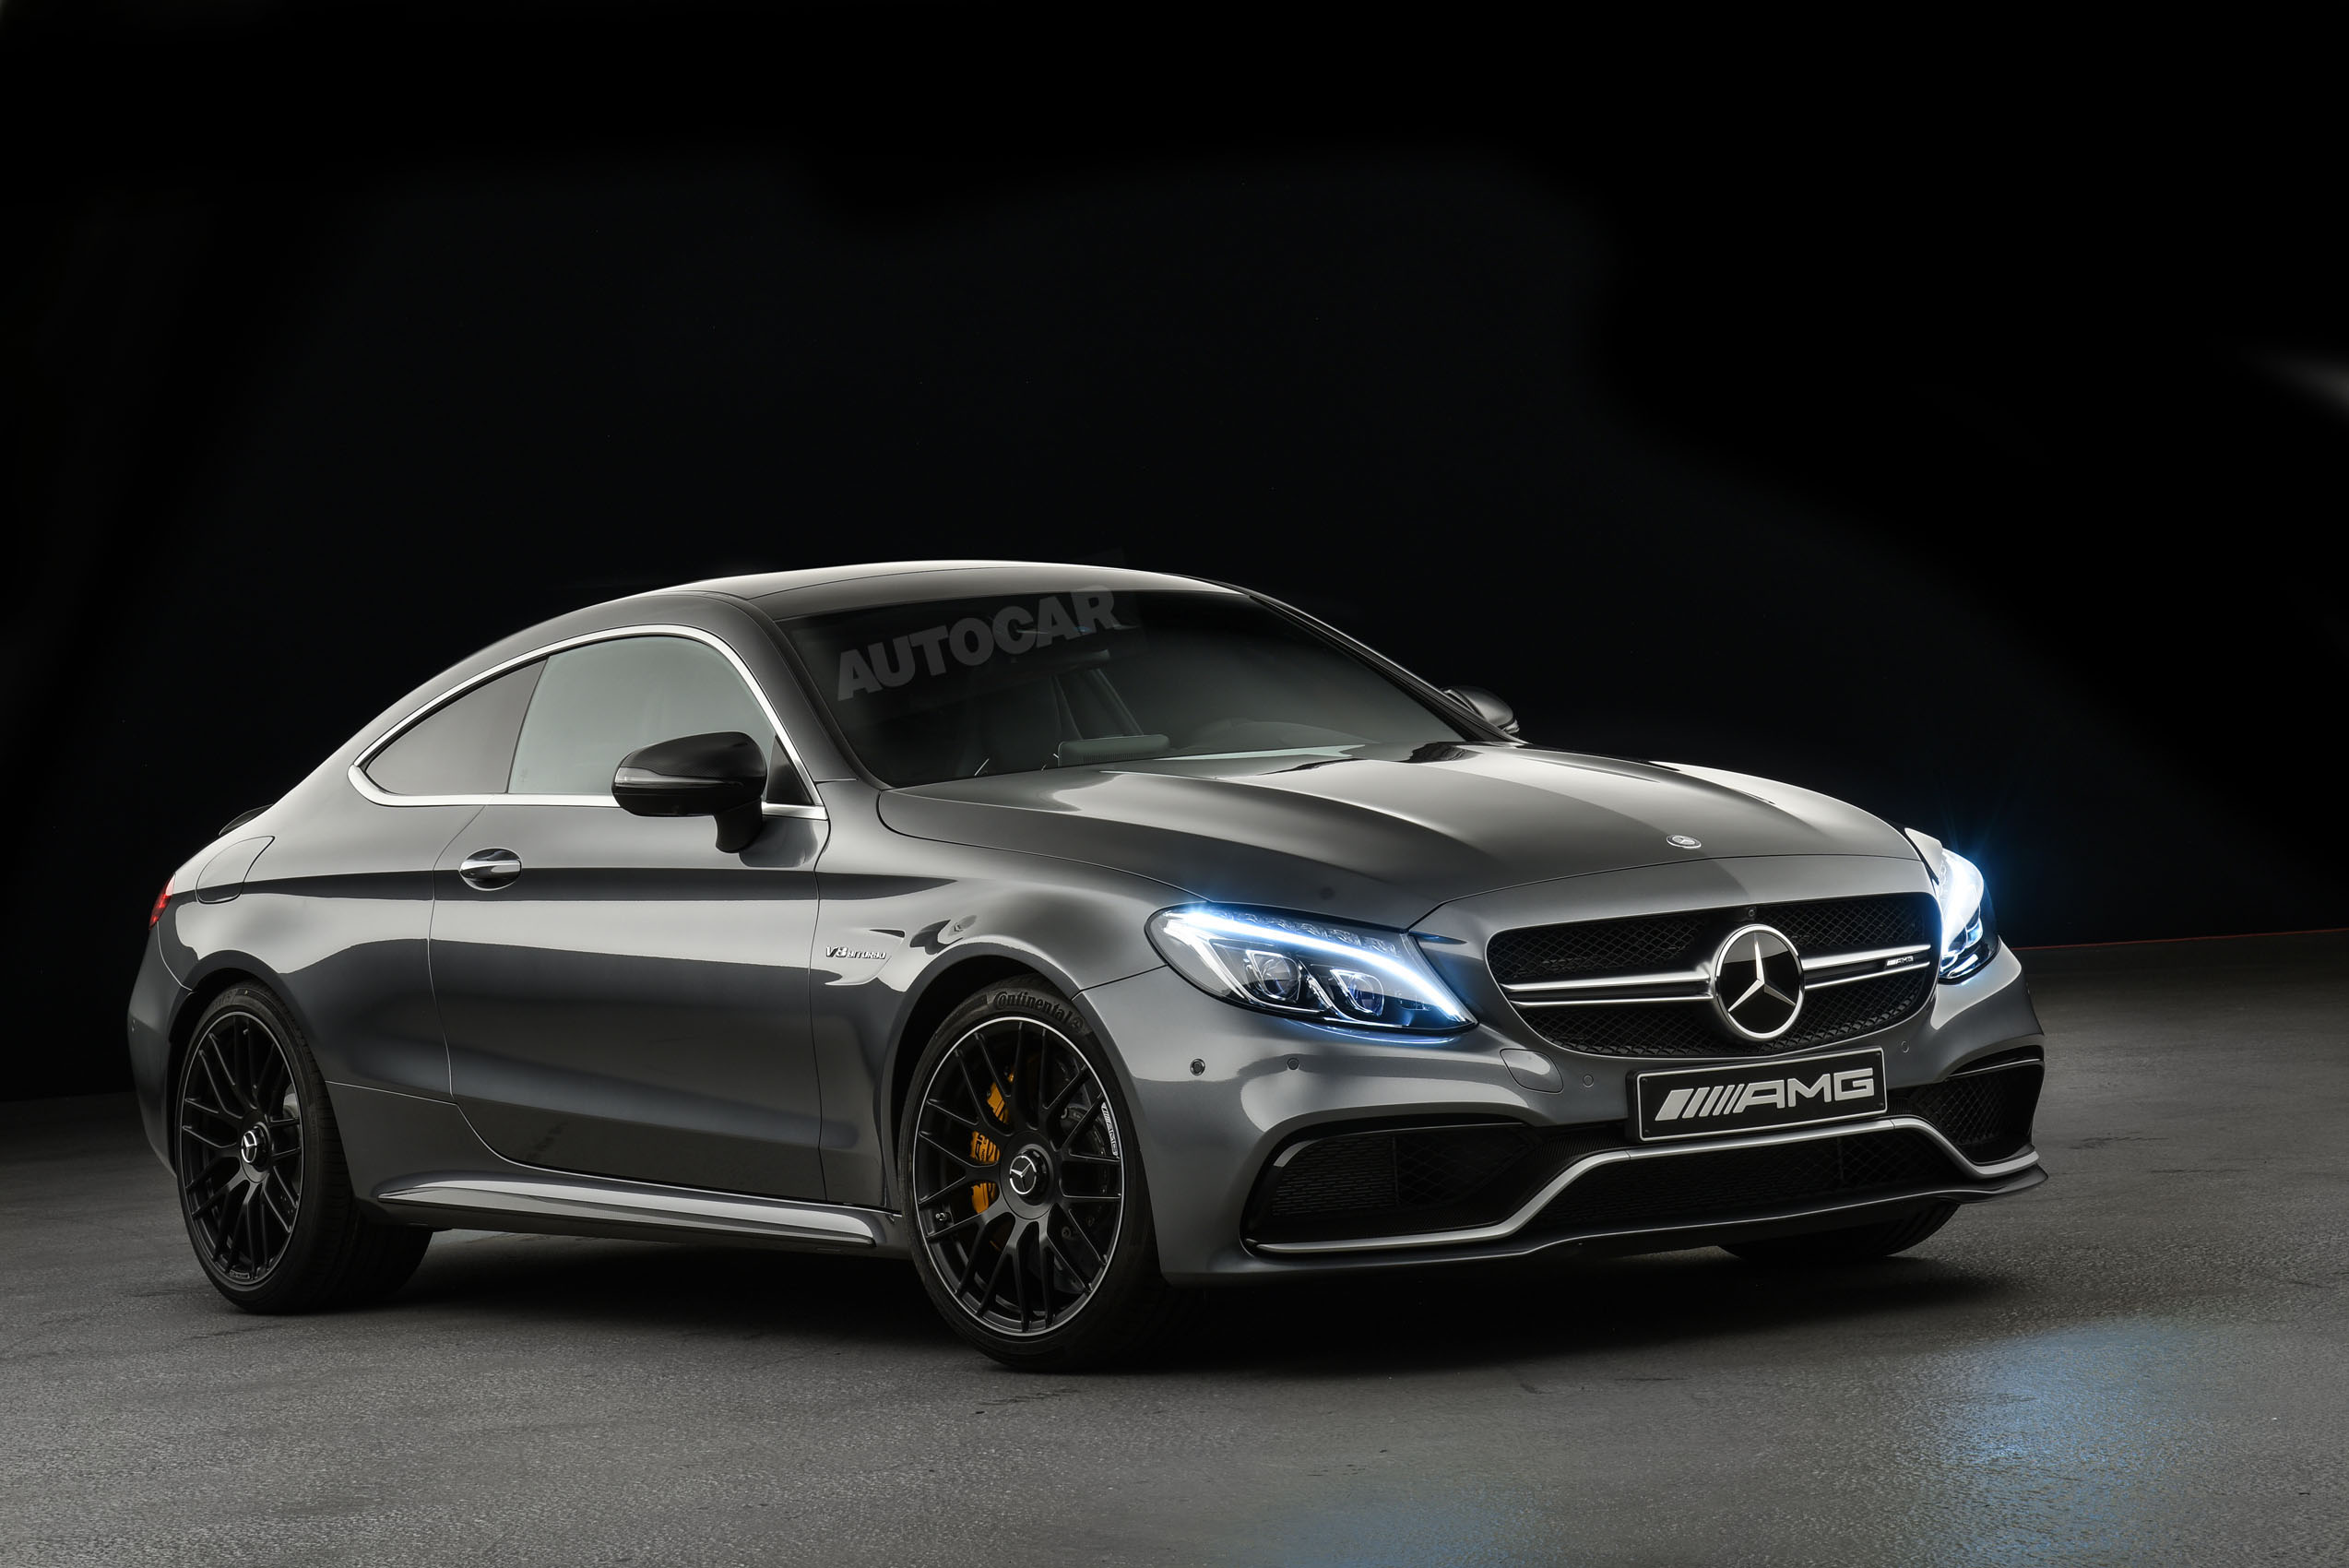 2016 Mercedes Amg C63 Coupe Revealed Exclusive Studio Pictures 99 Gmc Van Wiring Diagram Door Autocar